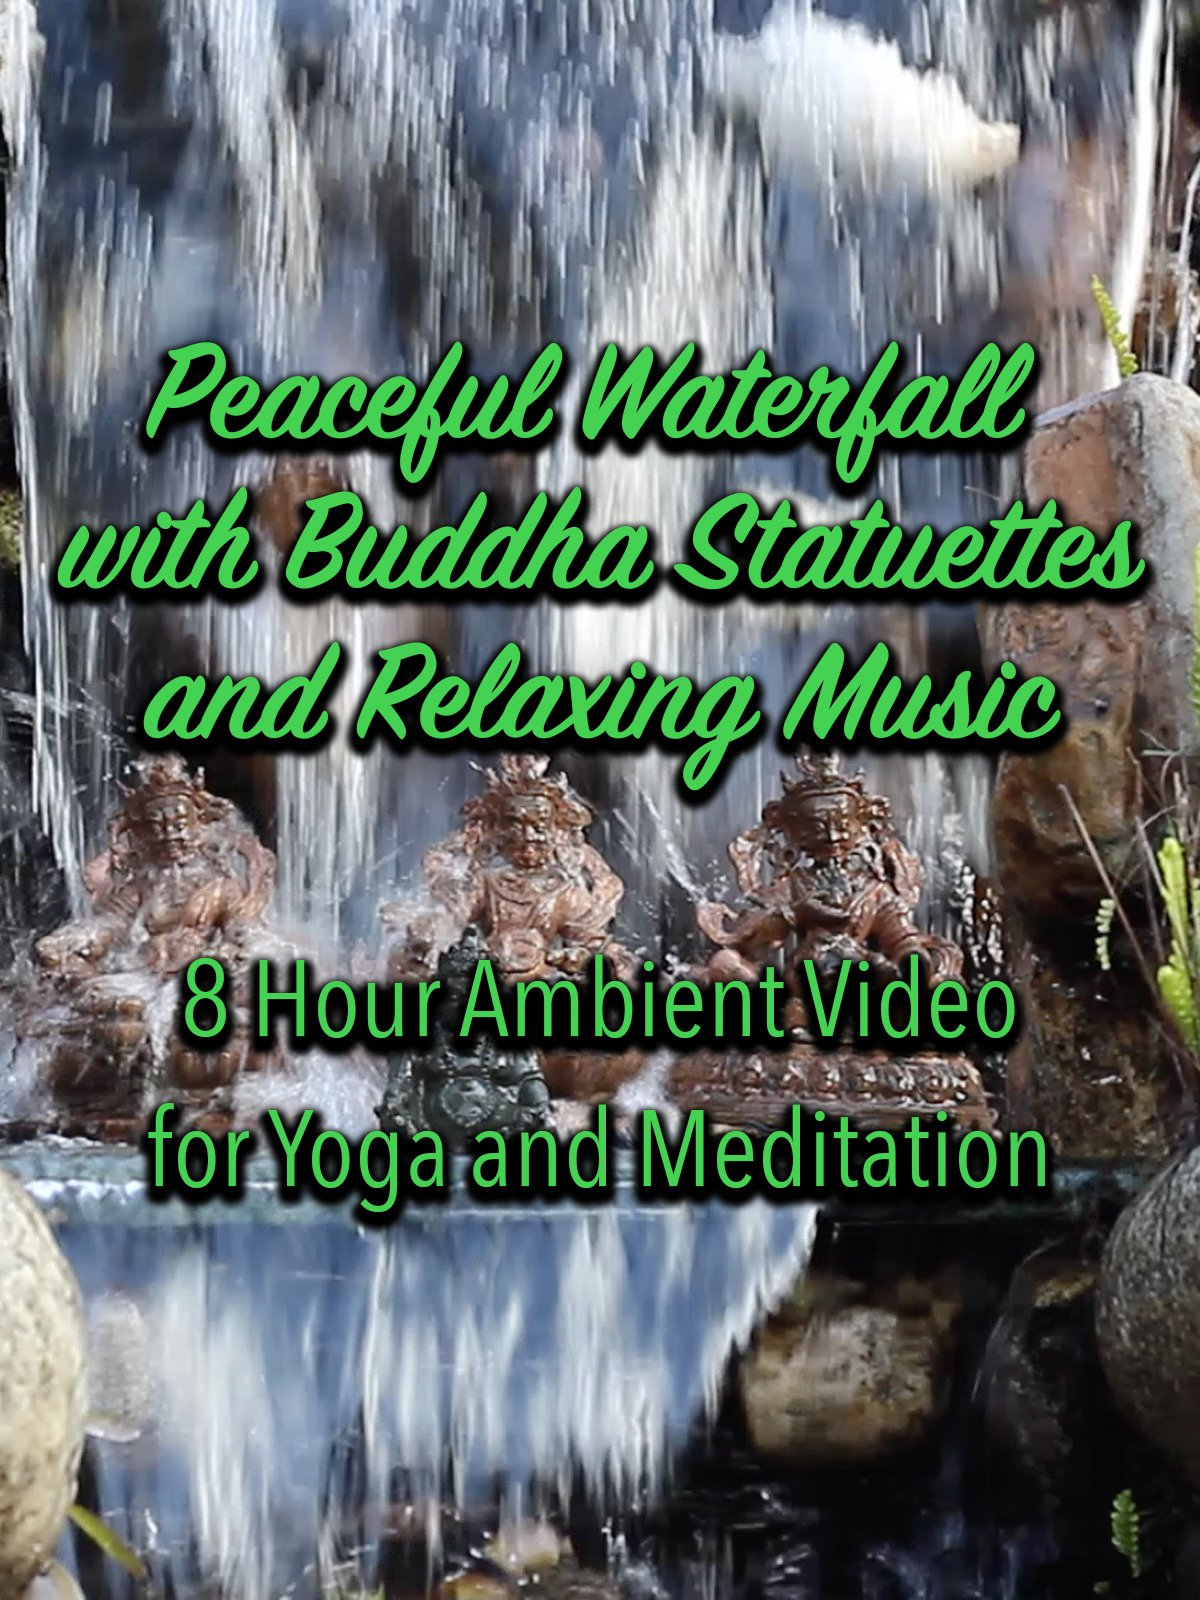 Peaceful Waterfall with Buddha Statuettes and Relaxing Music 8 Hour Ambient Video for Yoga and Meditation